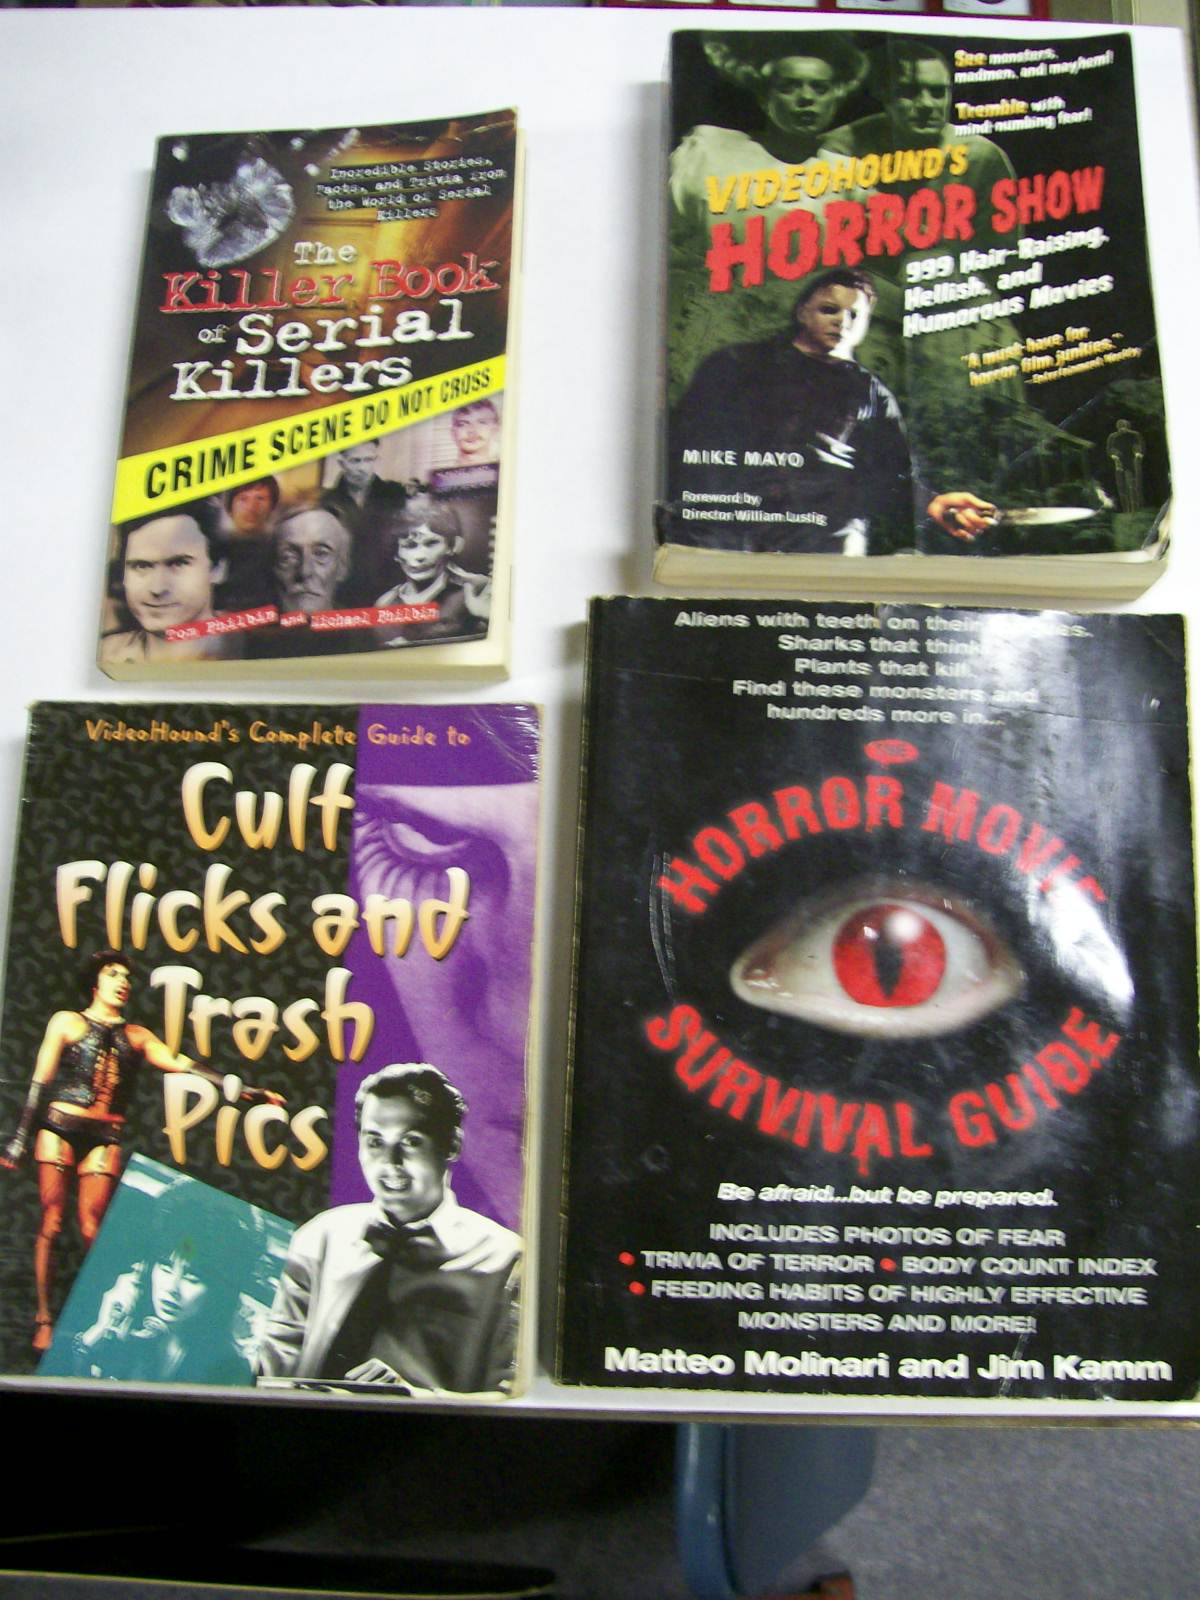 4 Books of Horror Movies, Shows, Cult & Serial Killers